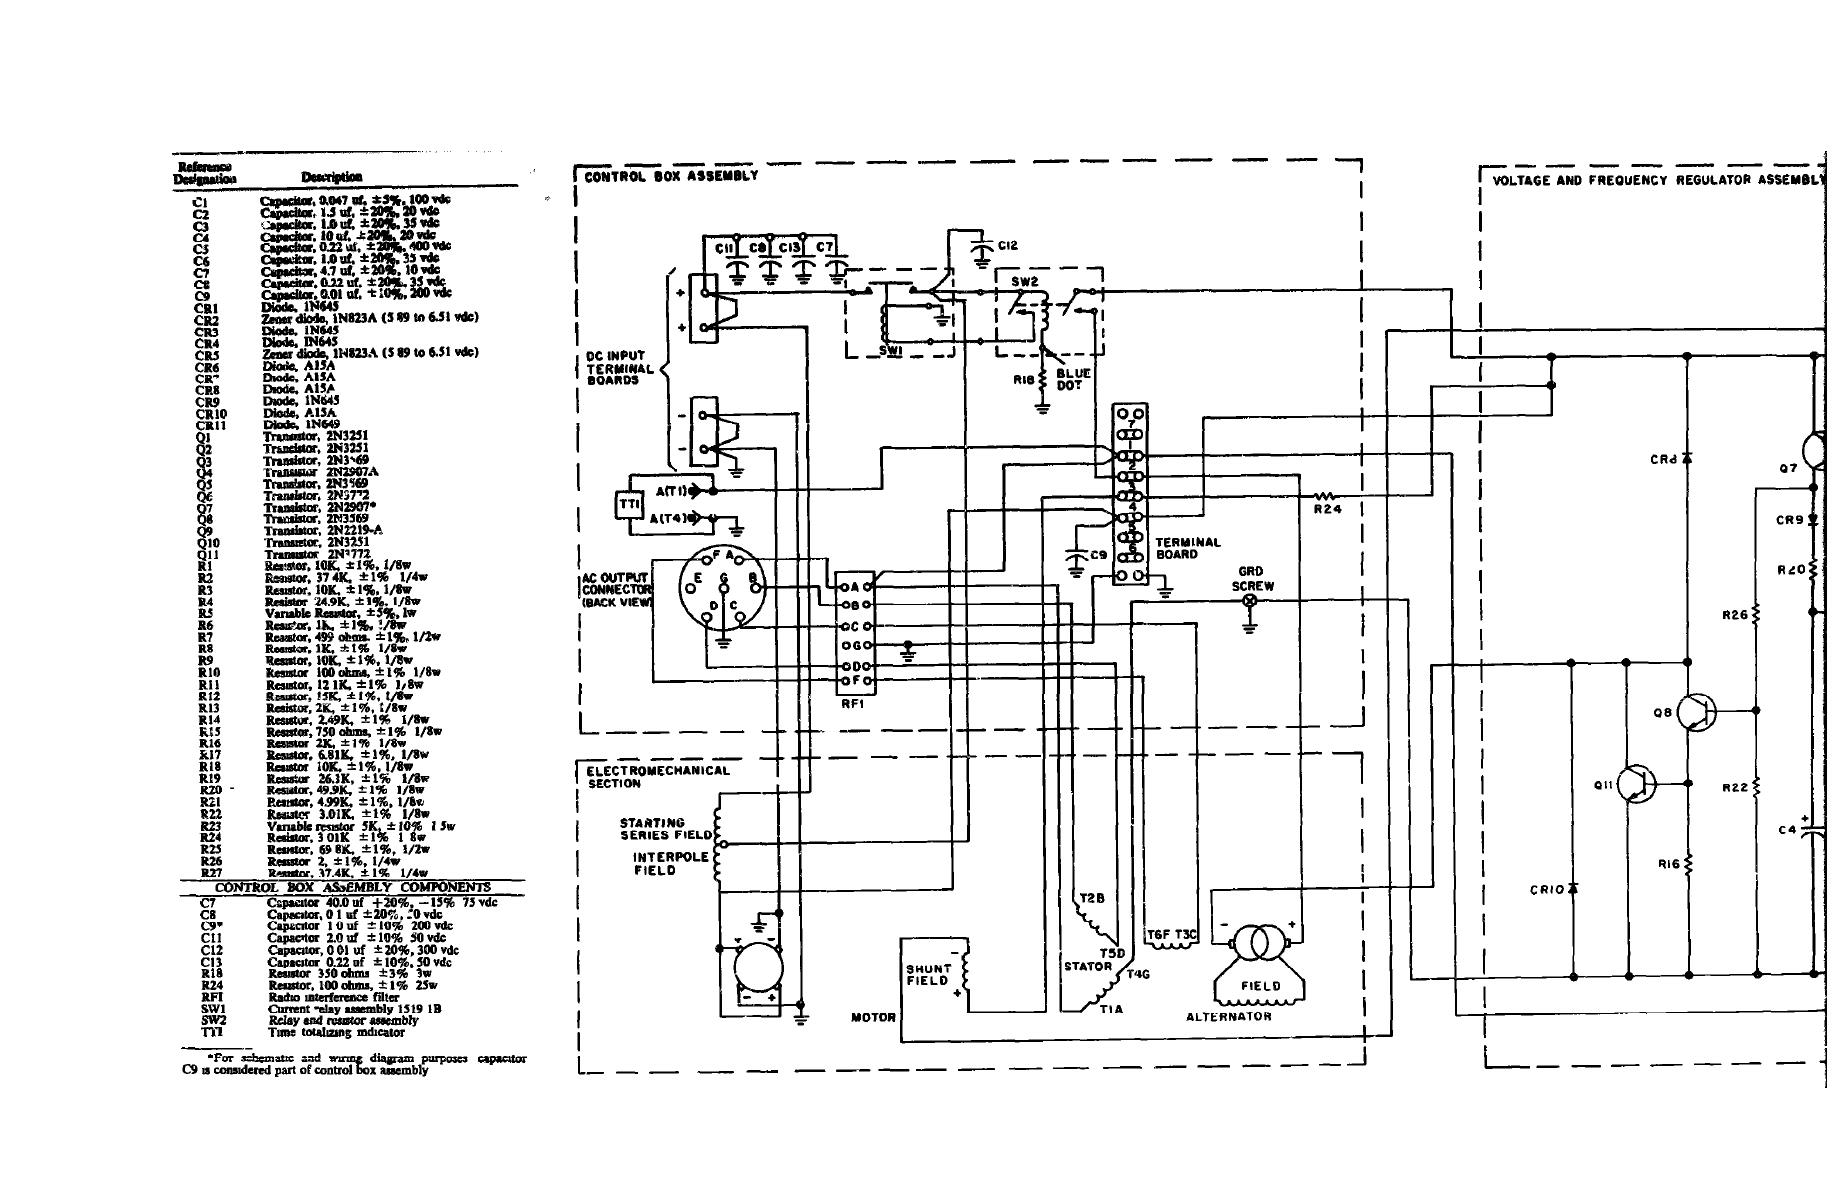 Figure FO-2.1. Schematic diagram for motor-generator PU